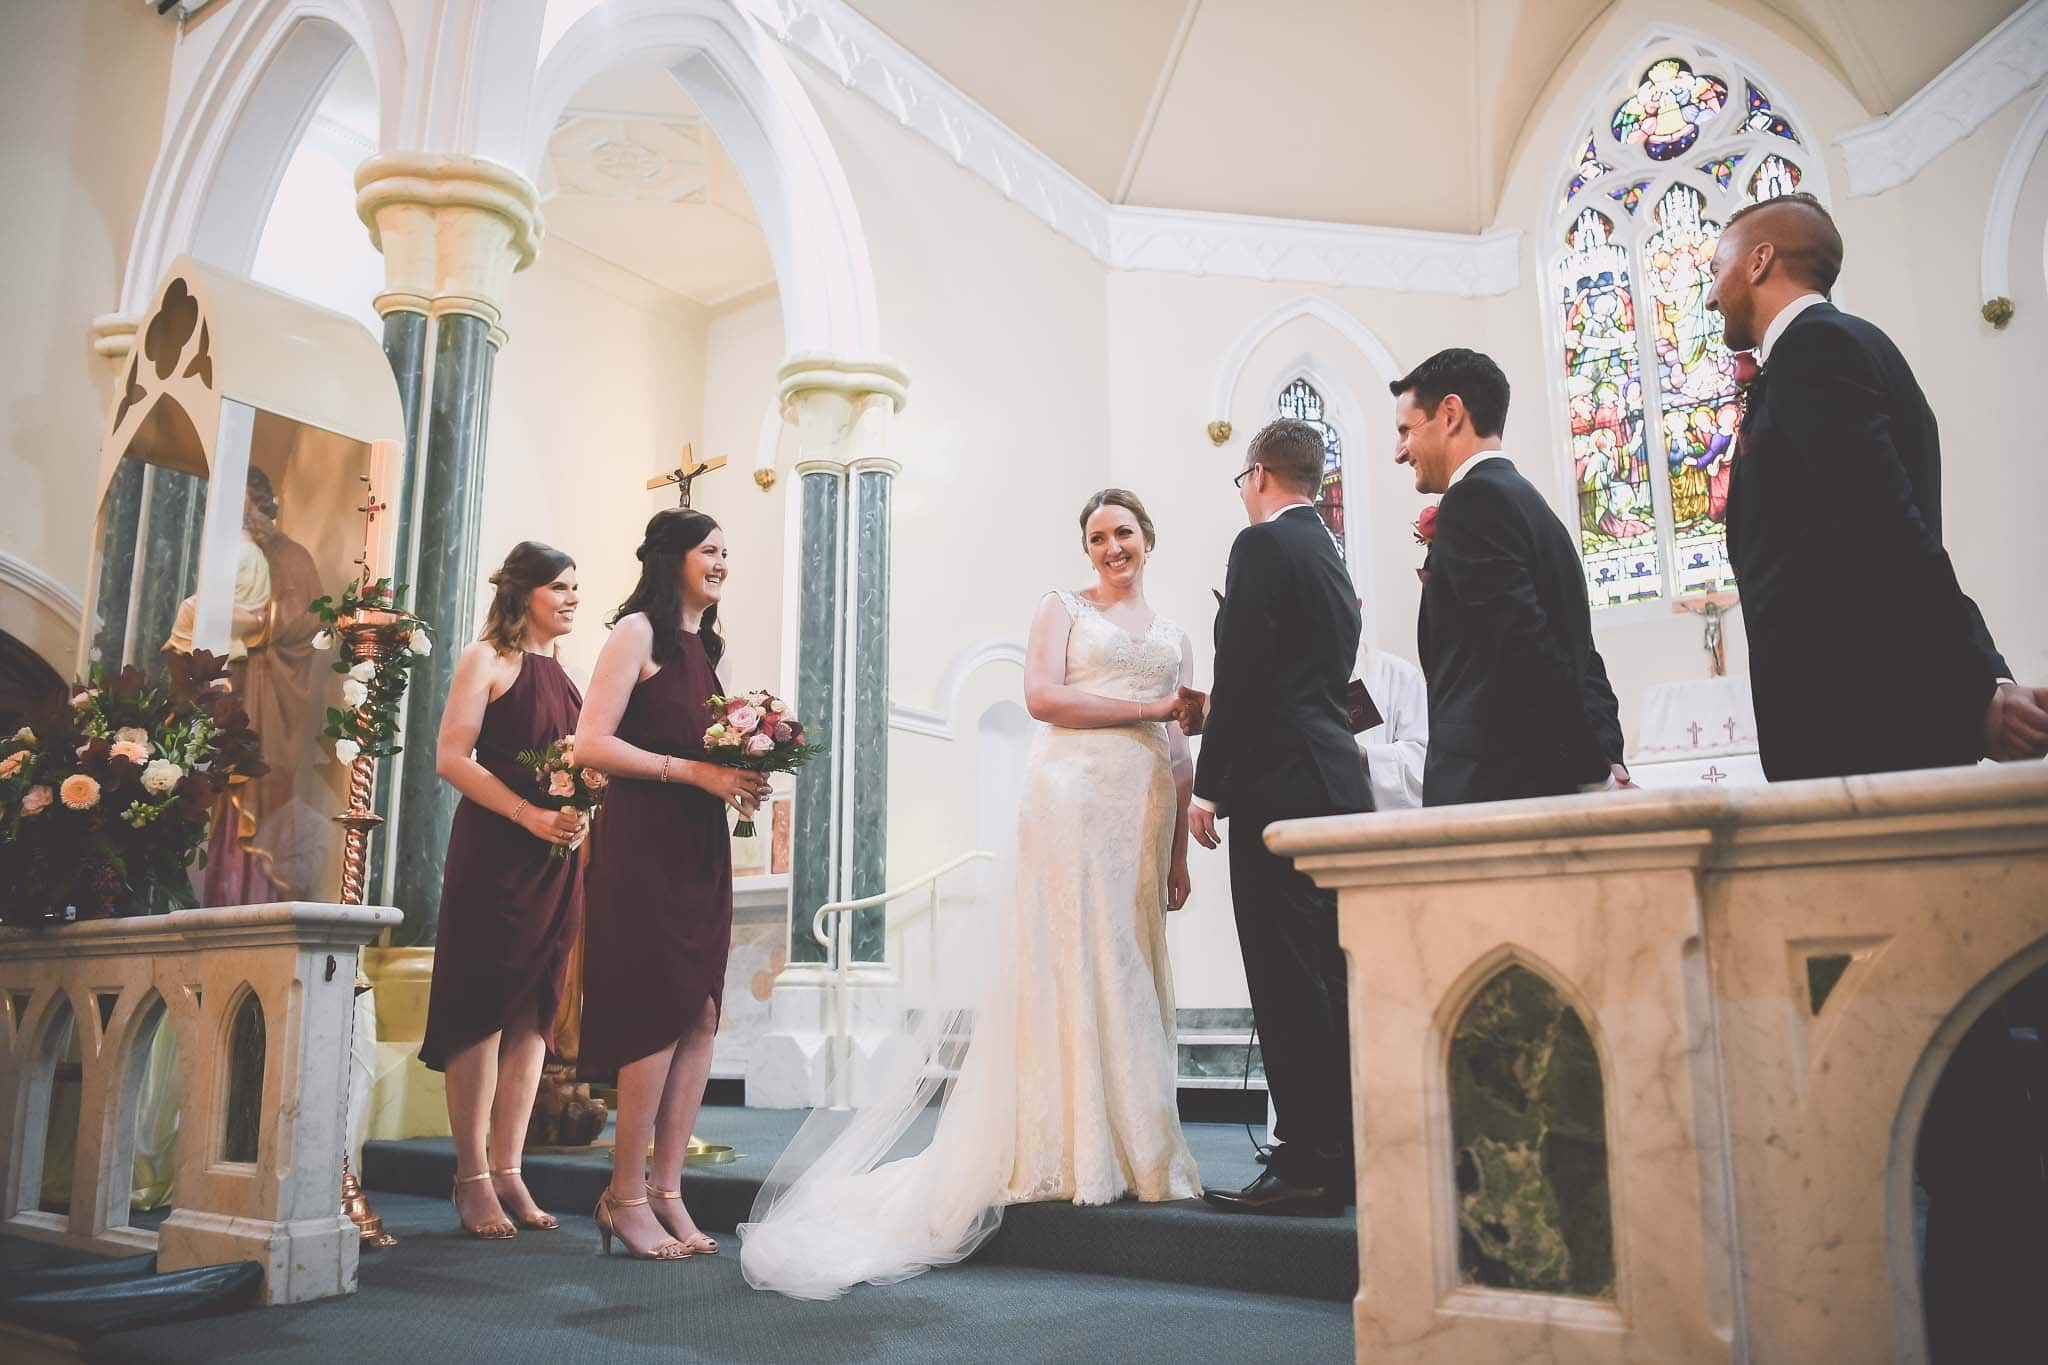 Melbourne wedding photography of a bride looking back at the audience from the altar on her wedding day. Melbourne wedding Photographer Pause the Moment captured this beautiful wedding photo